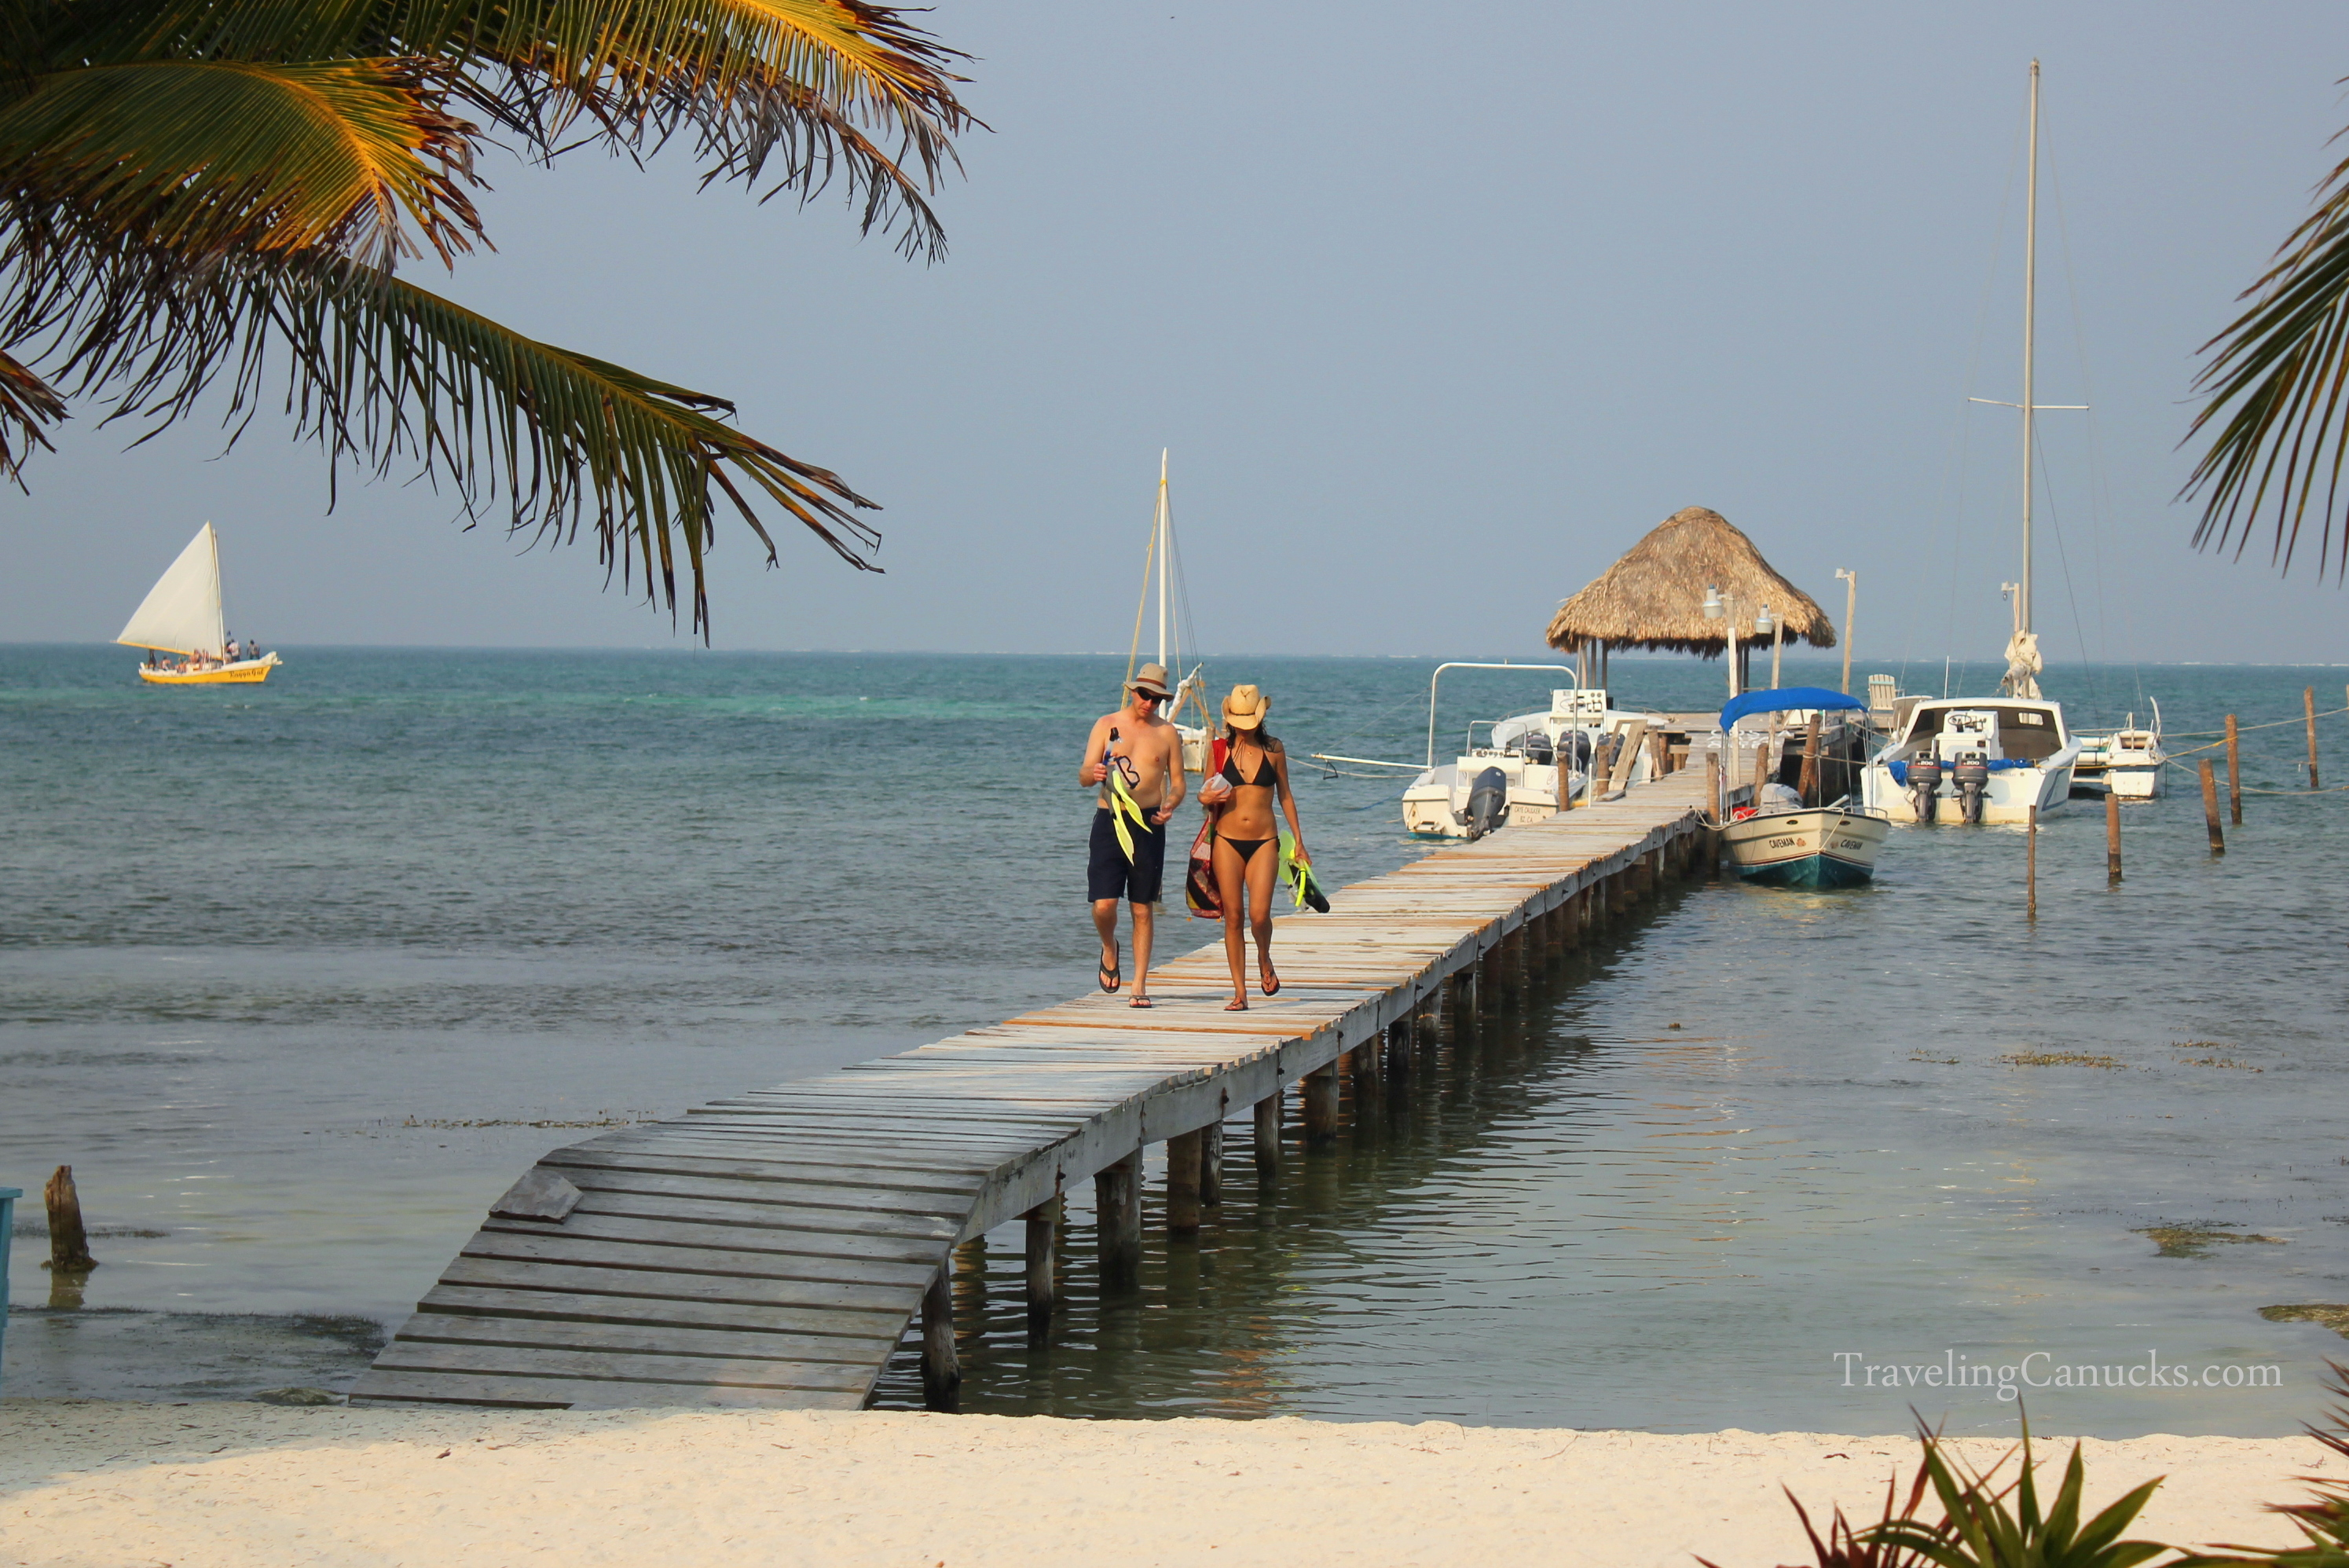 Snorkeling with Sharks, Sting Rays and Manatees in Belize